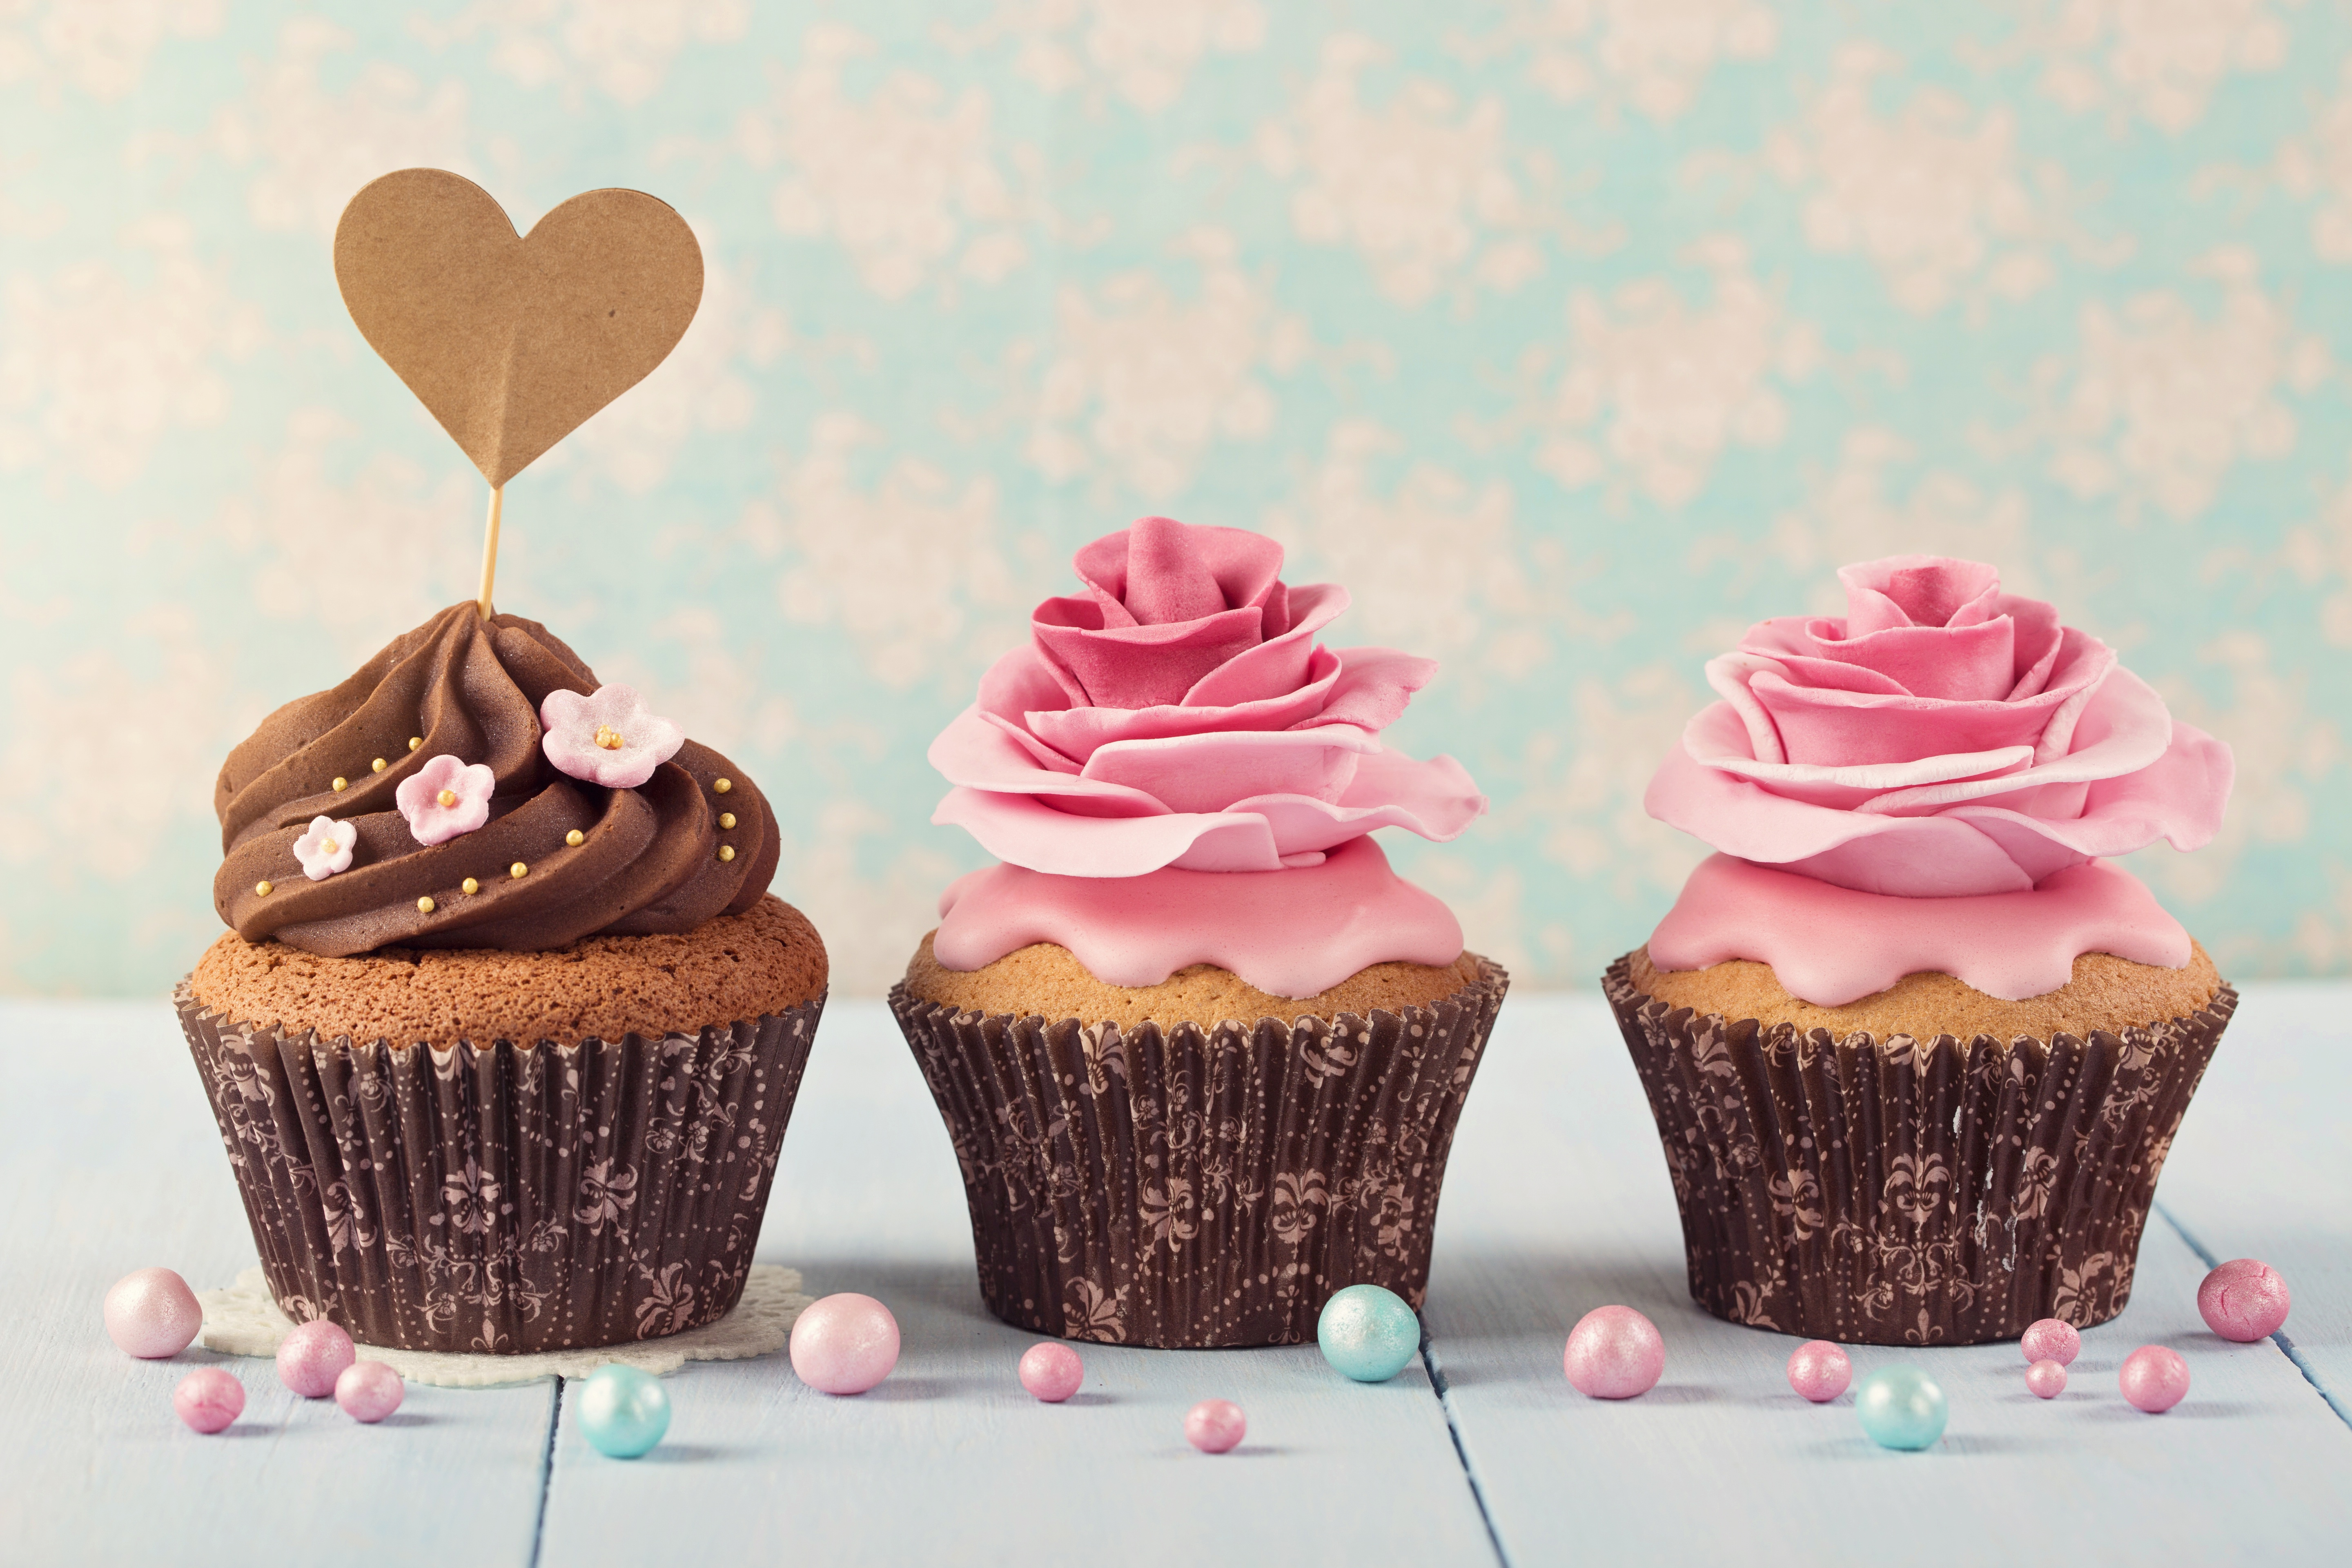 Cream Cupcake Icing Pastry Sweets 5760x3840